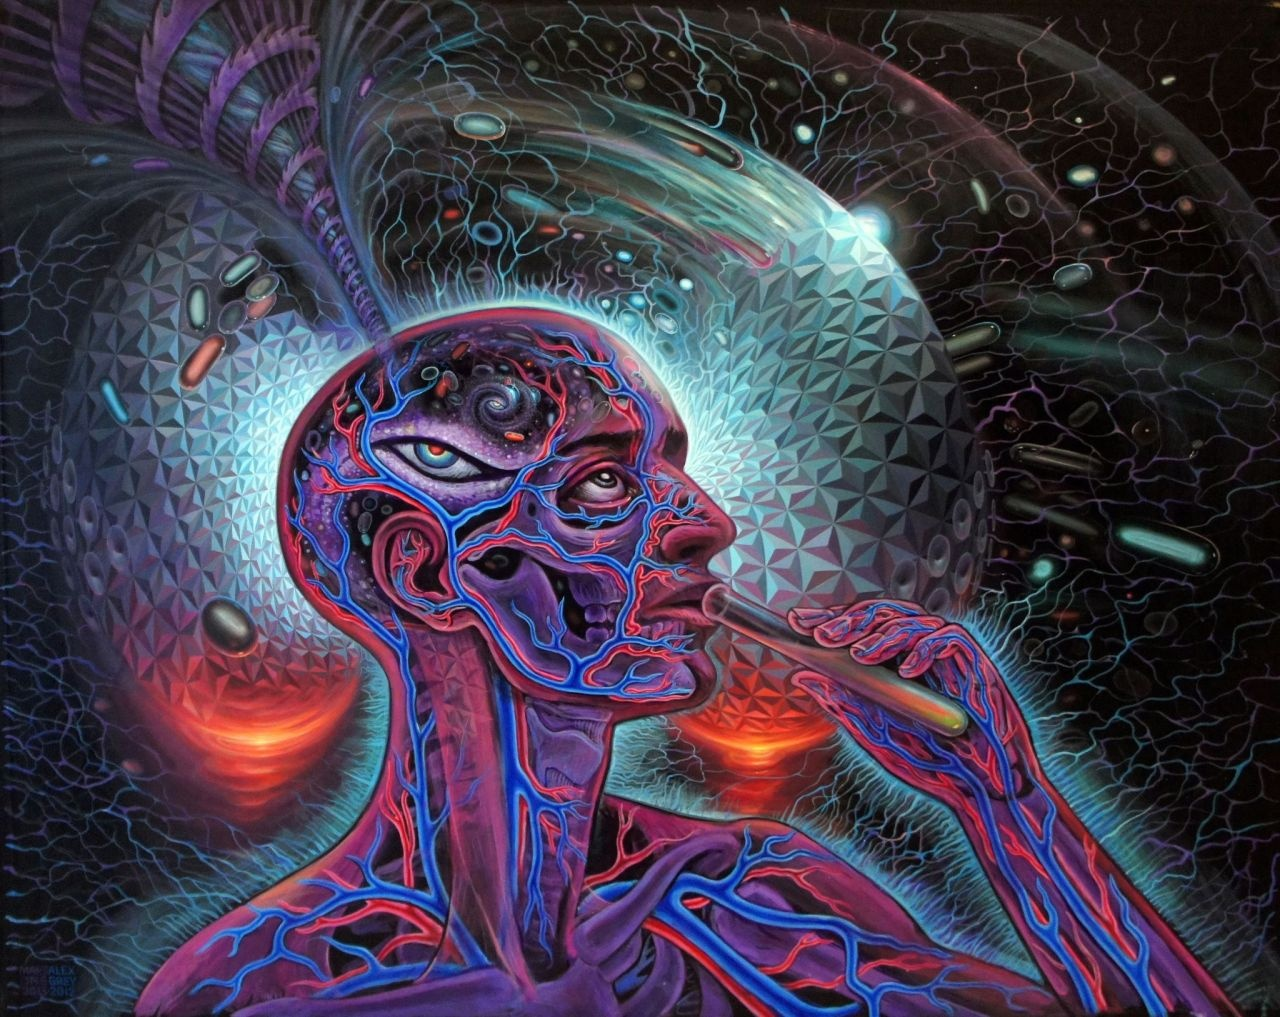 Can DMT be a bad trip, and if so what would that mean? - Quora